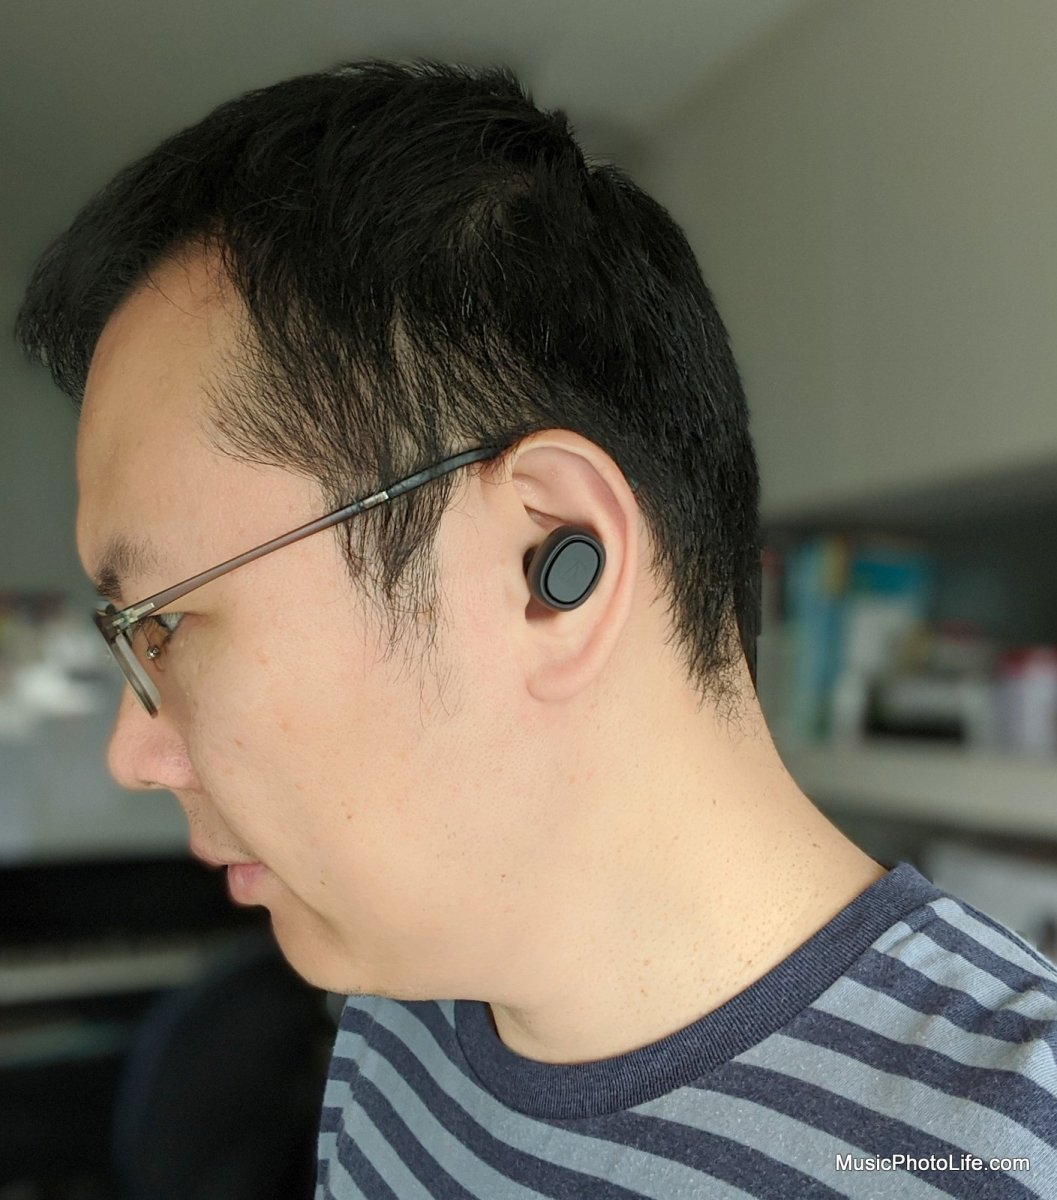 Audio-Technica ATH-CK3TW wearing in ears